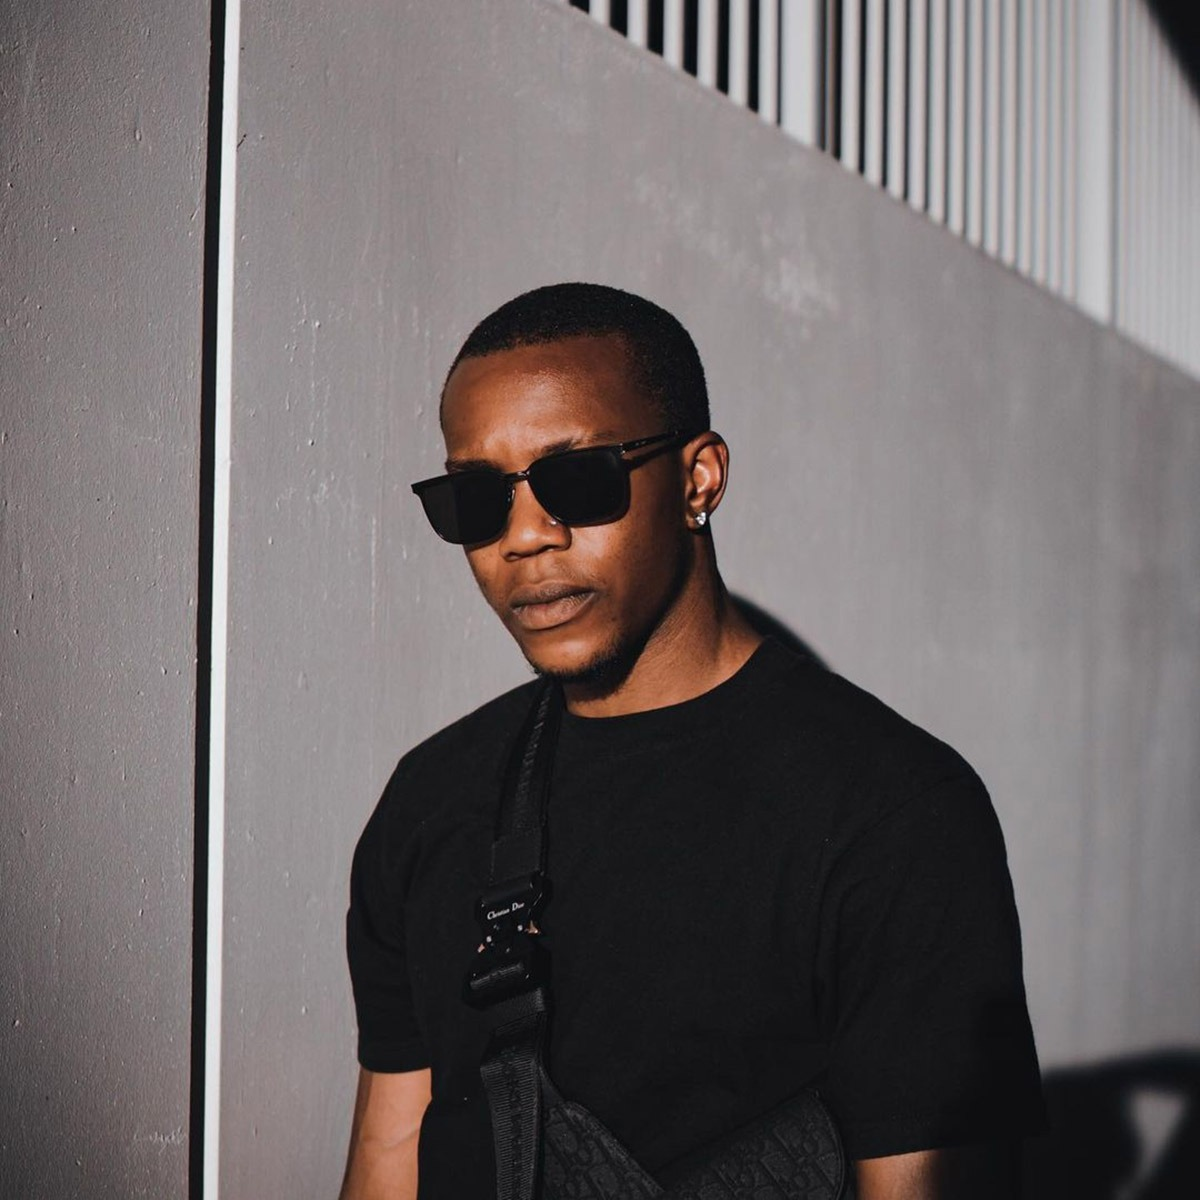 """Vancouver artist Dkay opens up on catchy """"Reup"""" & """"Don't Play"""" singles"""